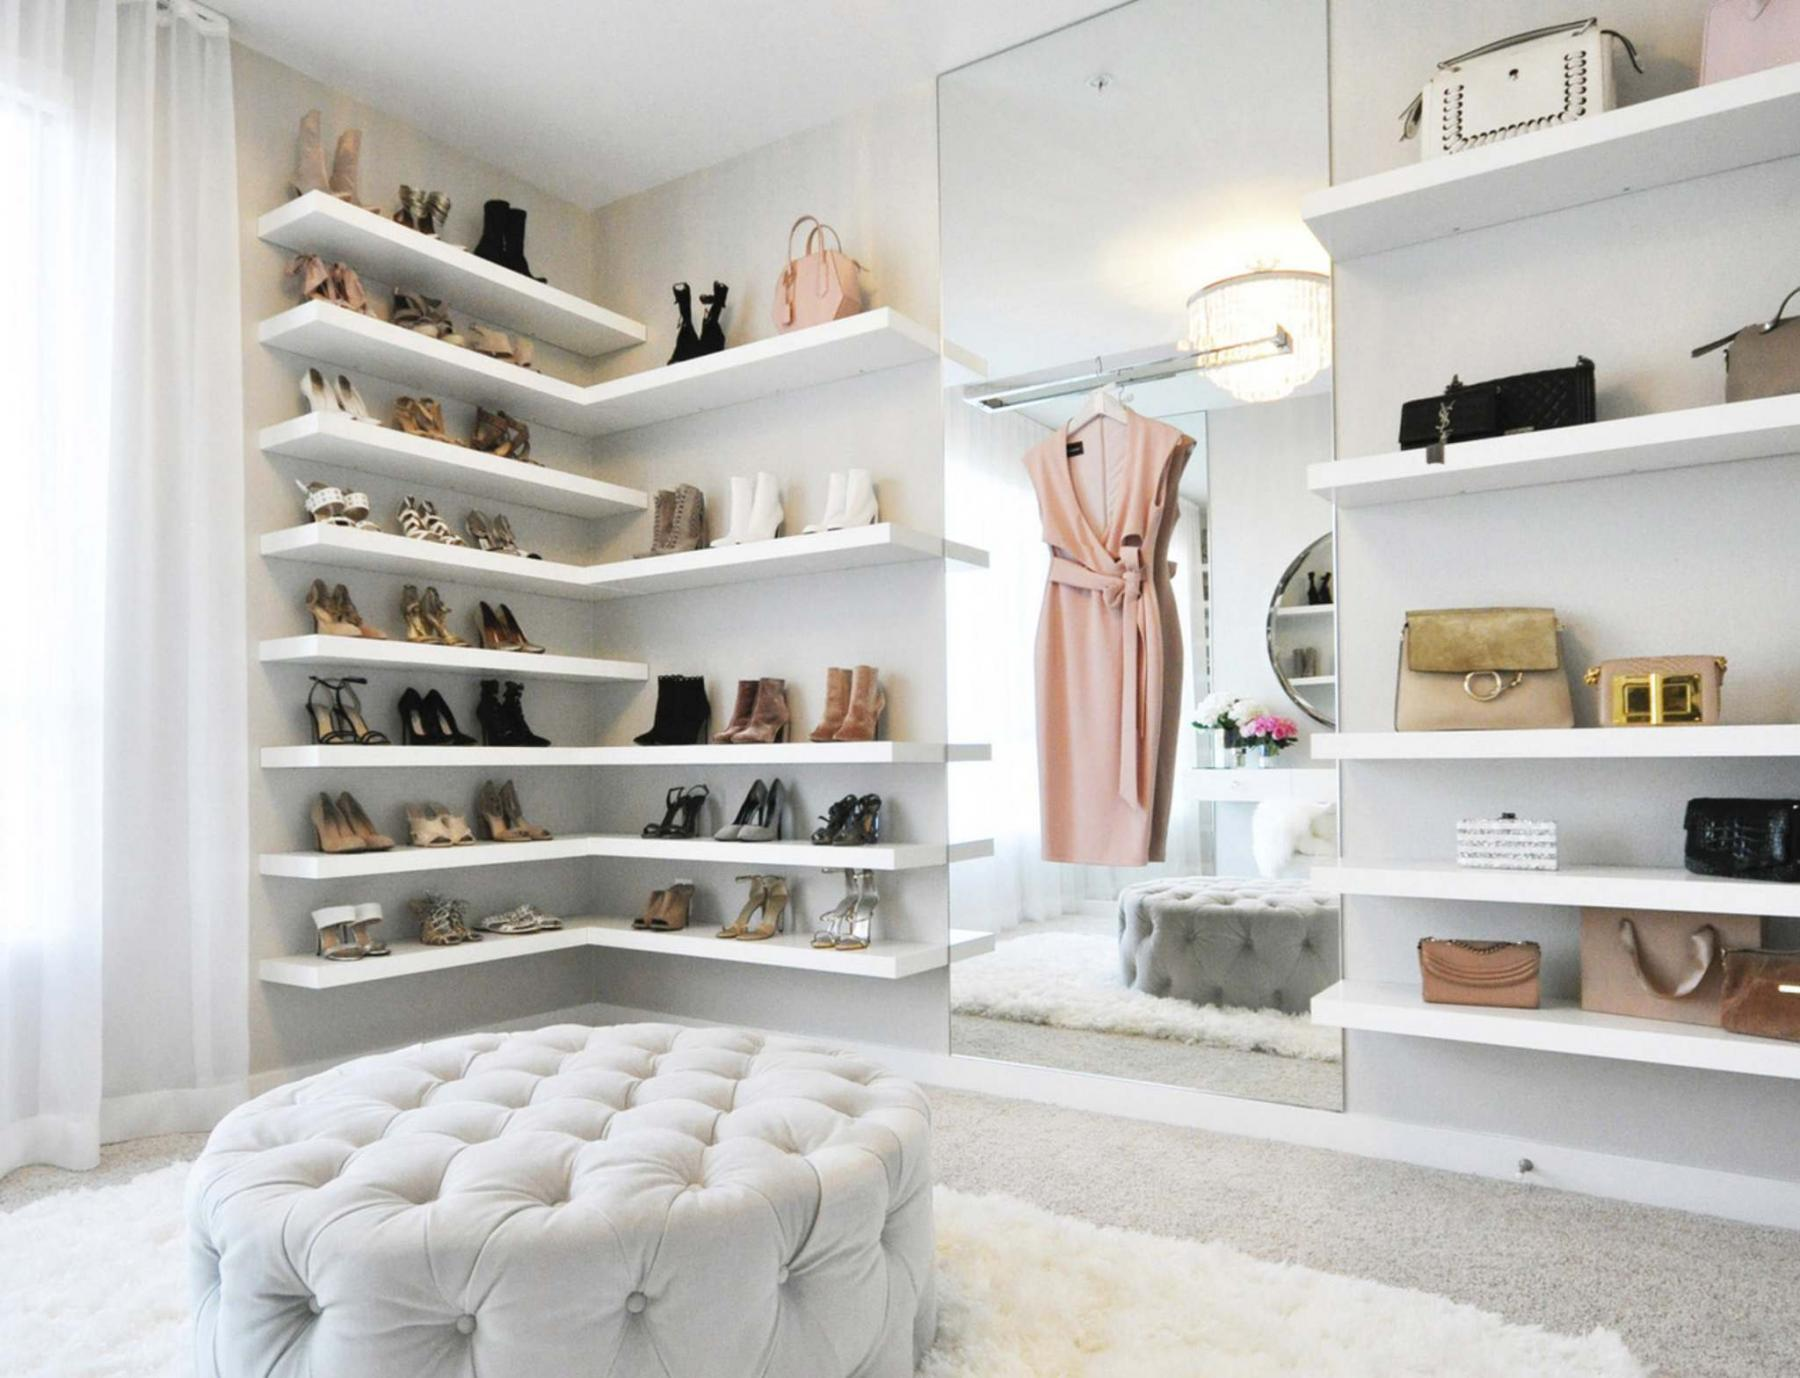 <p>LA Closet Design</p><p>This closet, designed for lifestyle blogger Jessi Malay by LA Closet Design, features floating shelves to display her collection of shoes.</p>